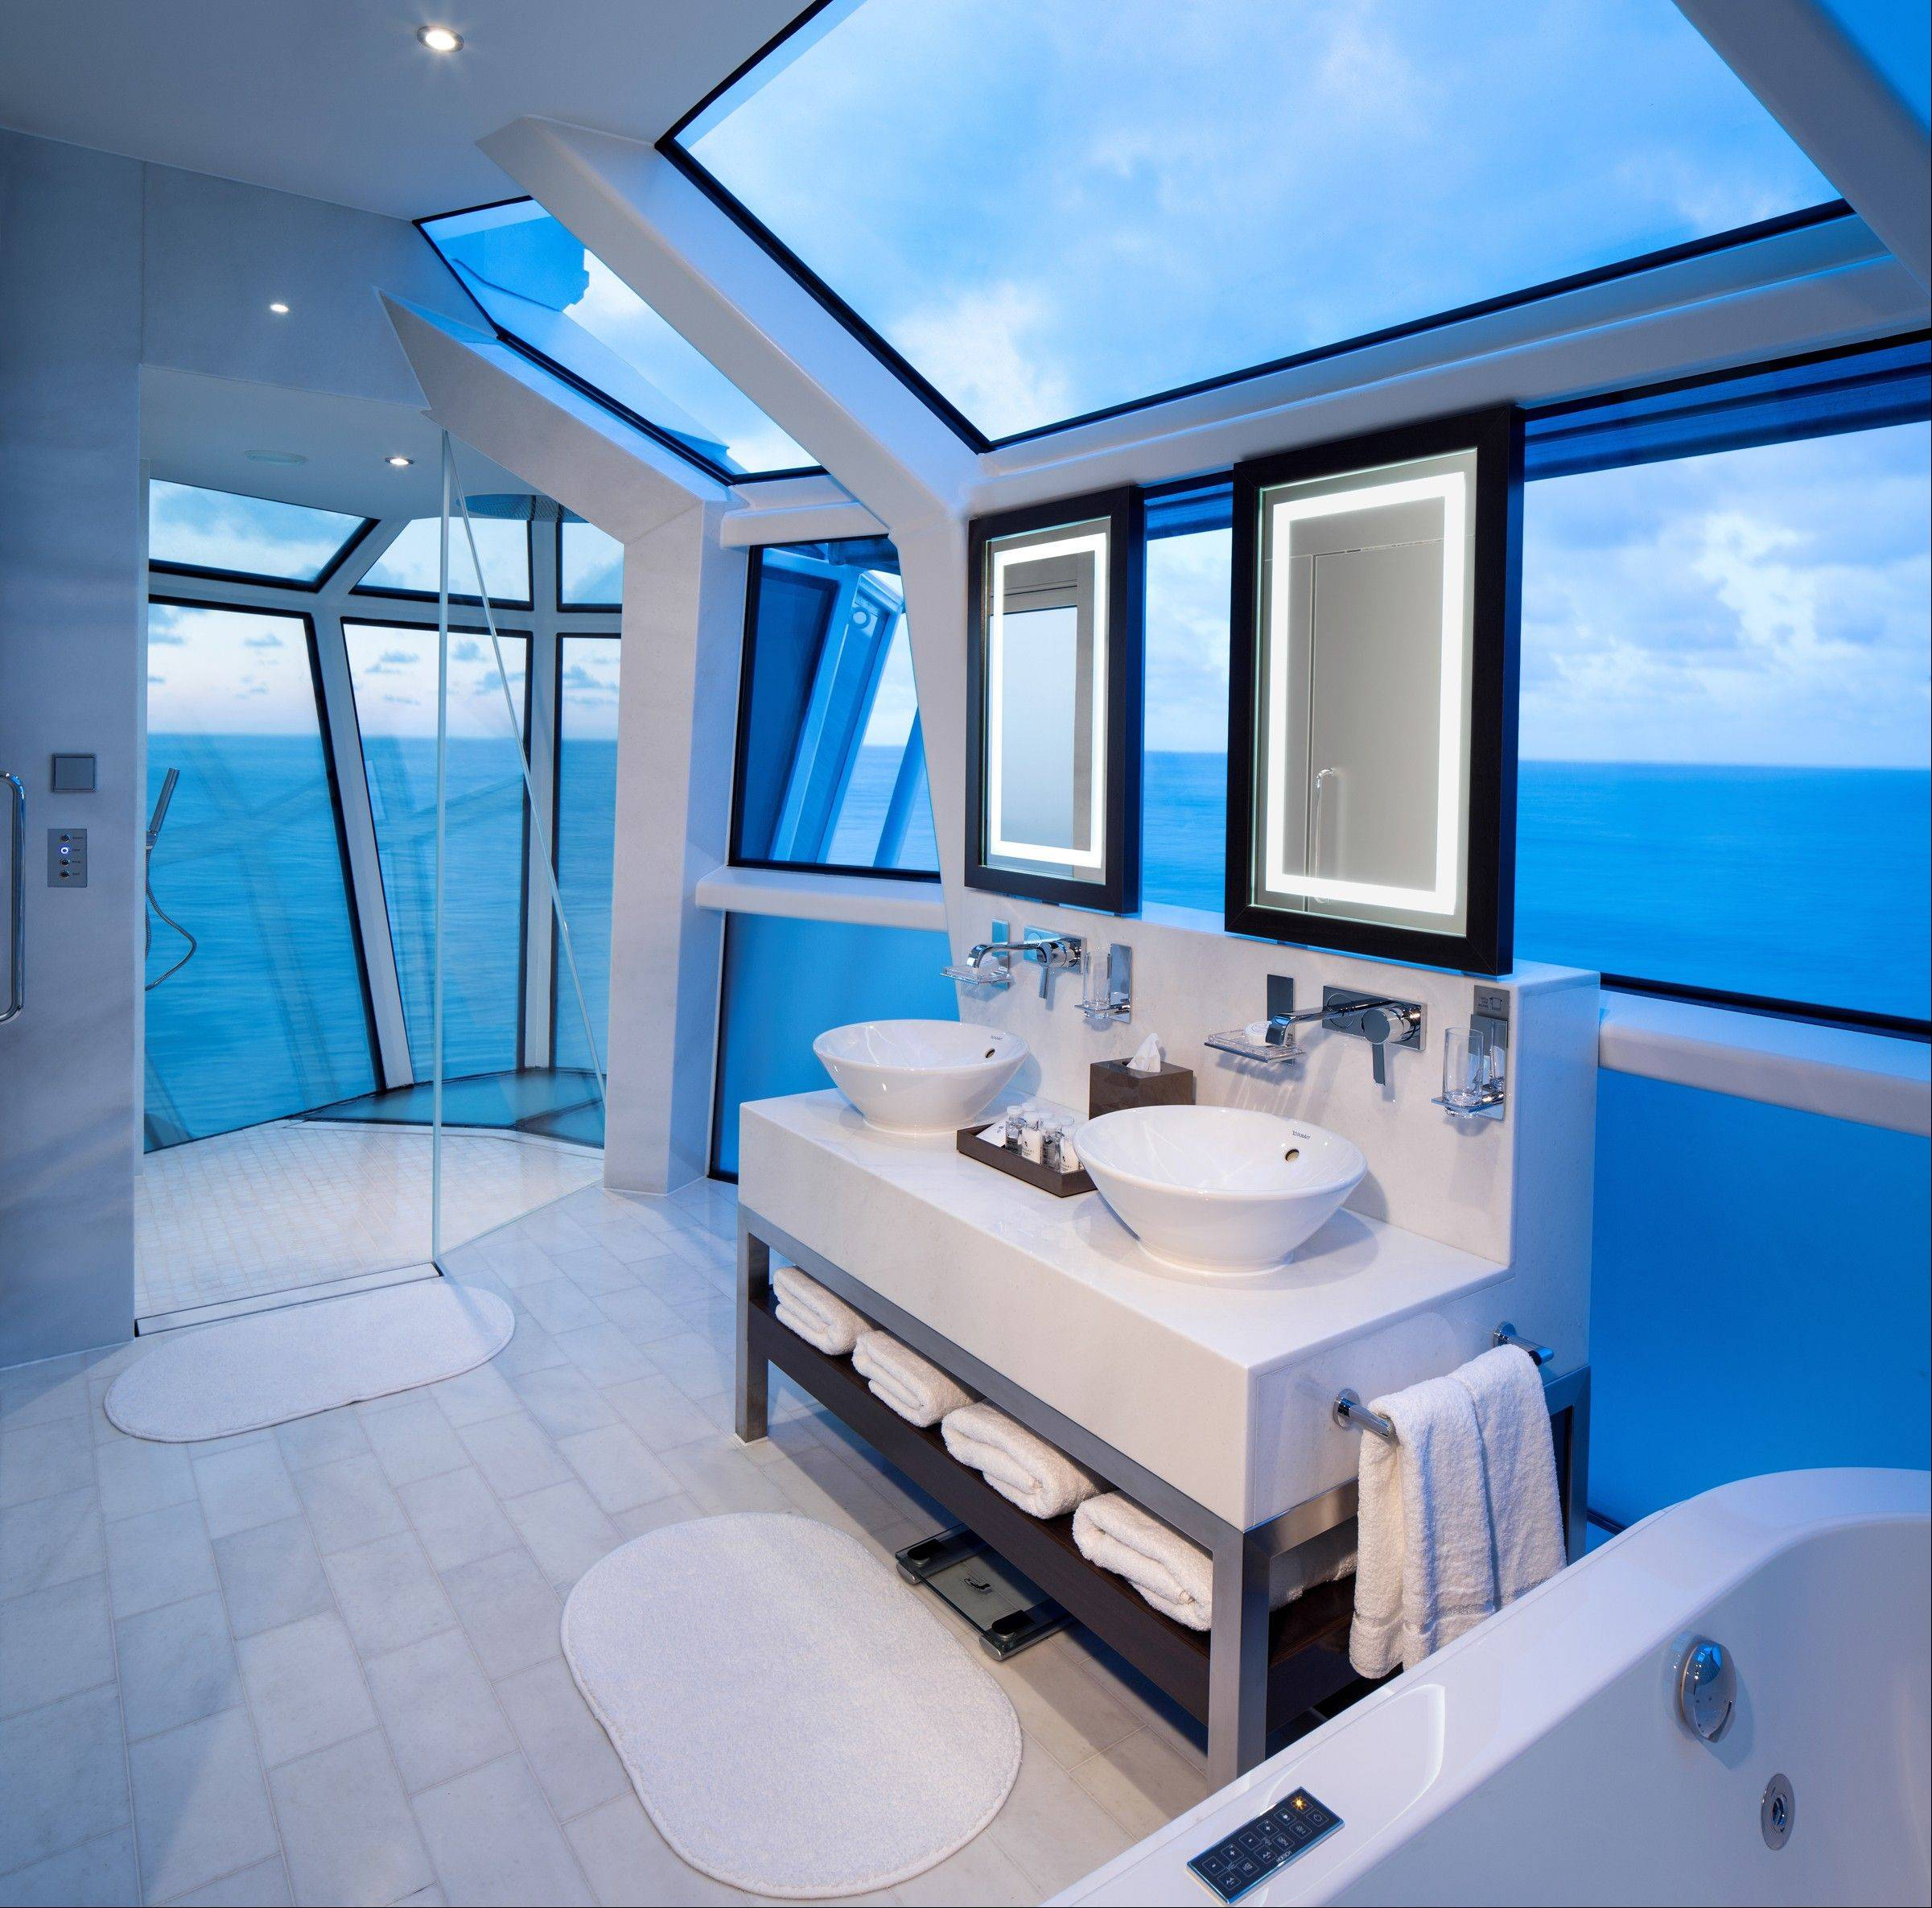 The Reflection Suite bathroom on Celebrity's new Reflection ship is an all-glass shower that extends over the edge of the ship with a wraparound veranda and special glass so you can see out, but not in.